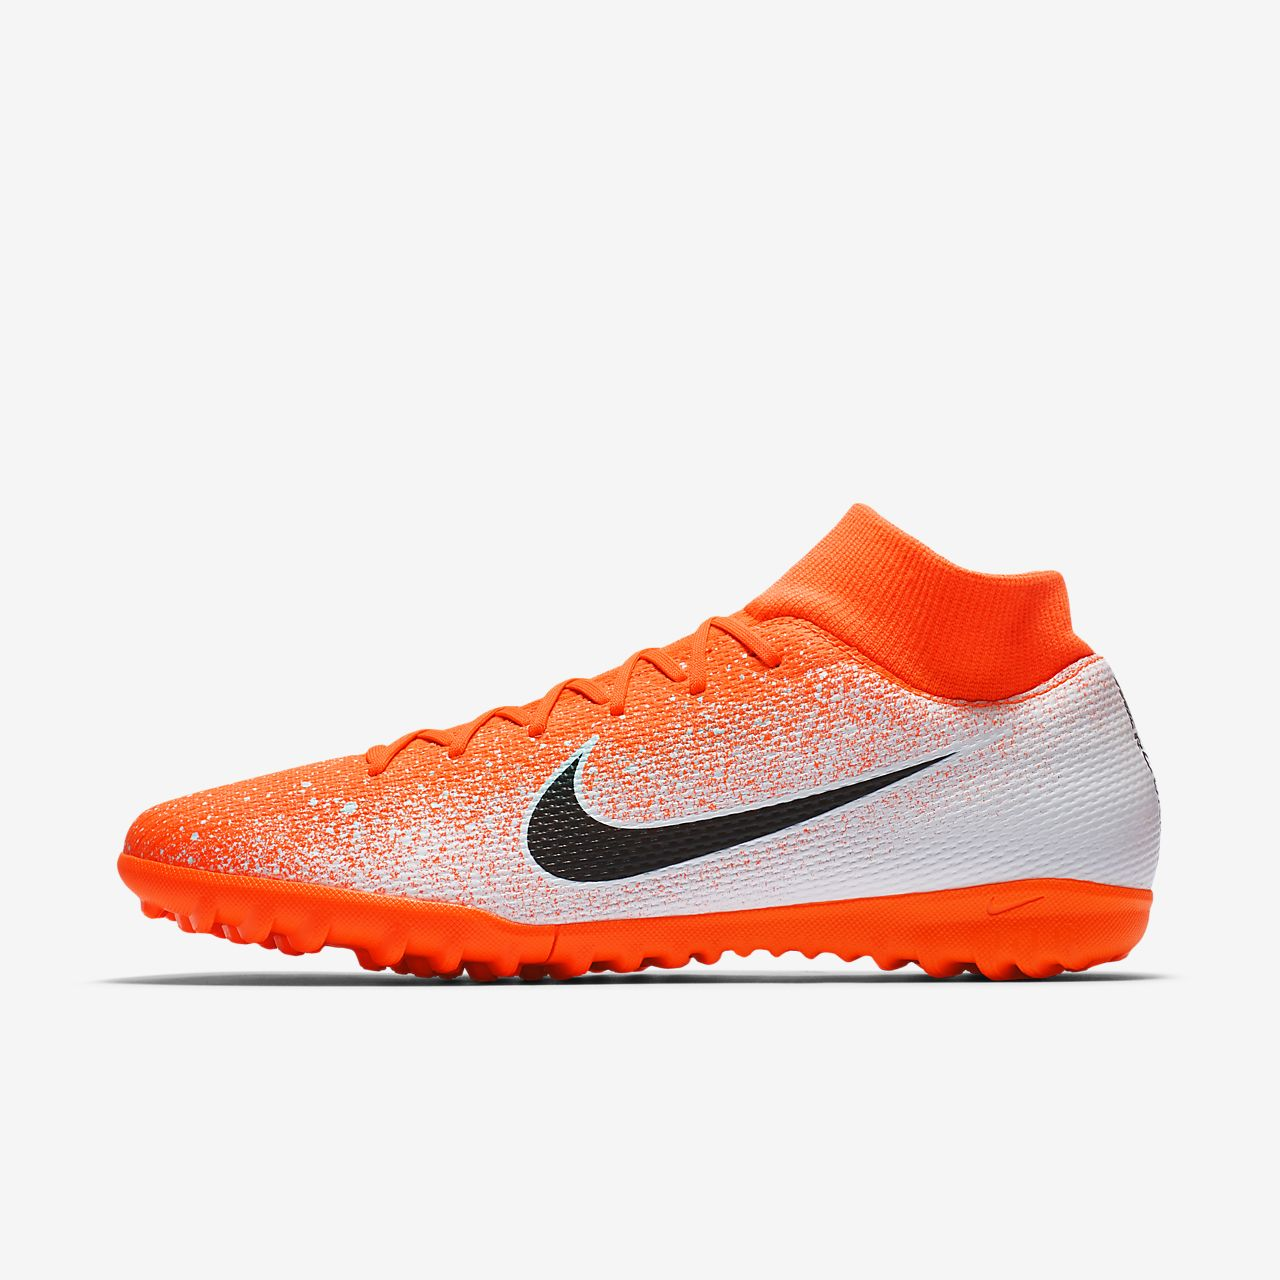 best website 8576f 3016b ... Chaussure de football à crampons pour surface synthétique Nike  SuperflyX 6 Academy TF